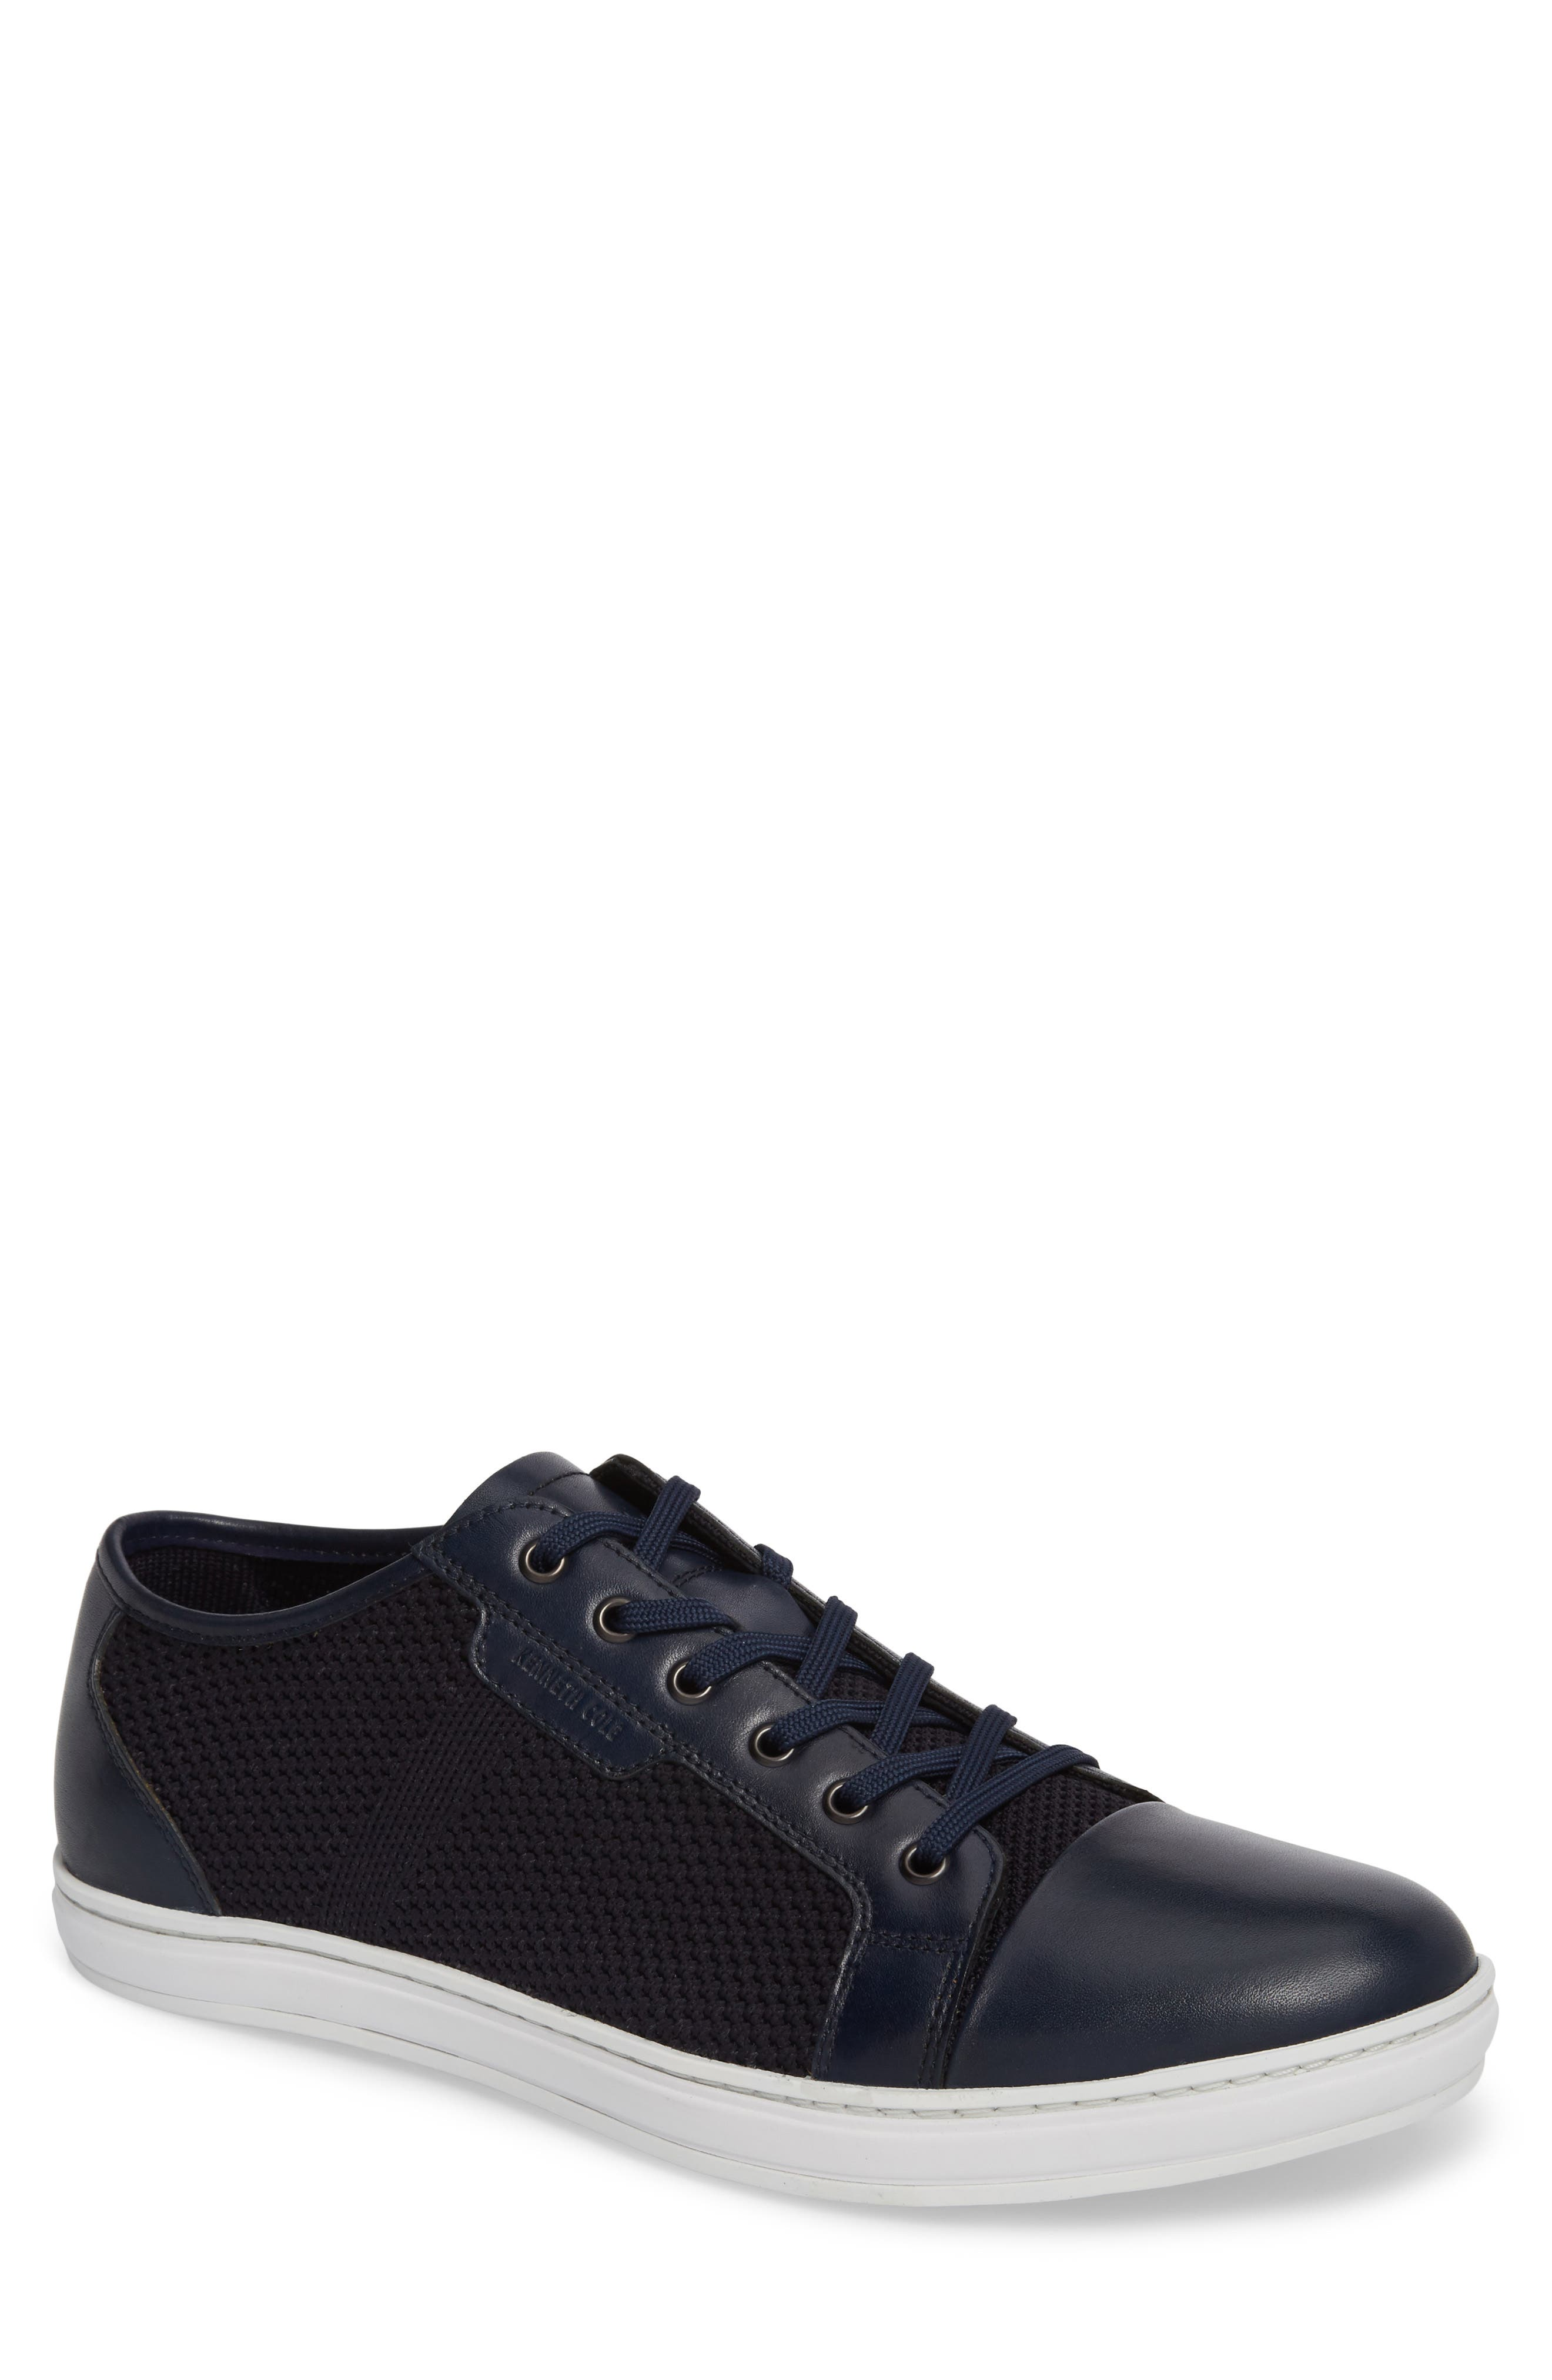 Knit Low Top Sneaker,                             Main thumbnail 1, color,                             Navy Leather